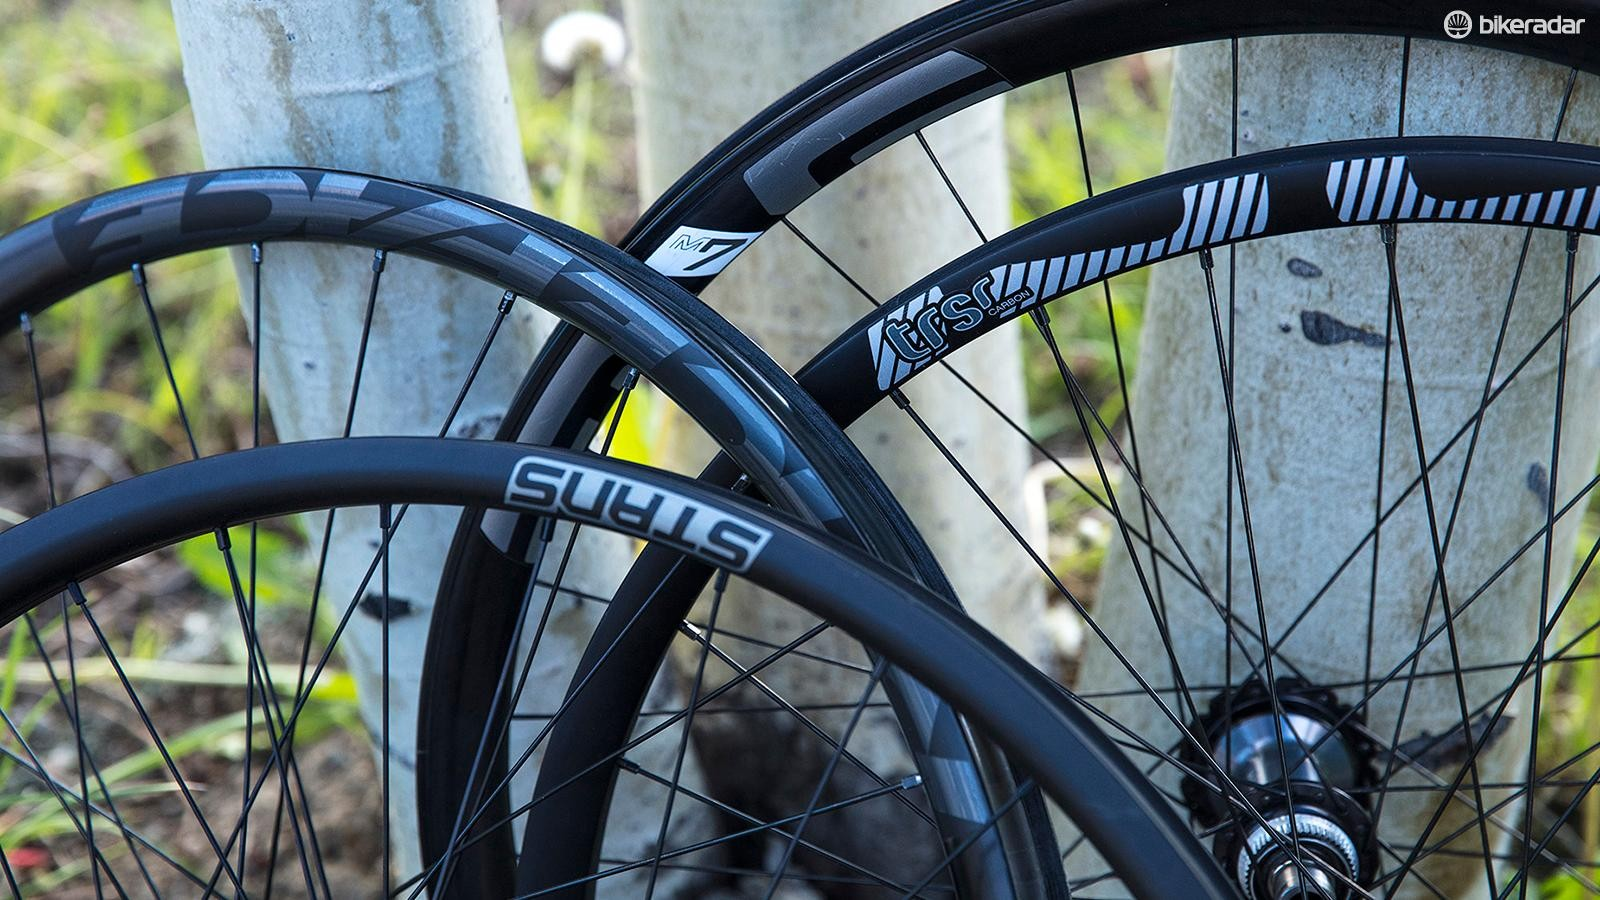 There are no XTR wheelsets with the new group, instead Shimano is partnering with existing rim manufacturers